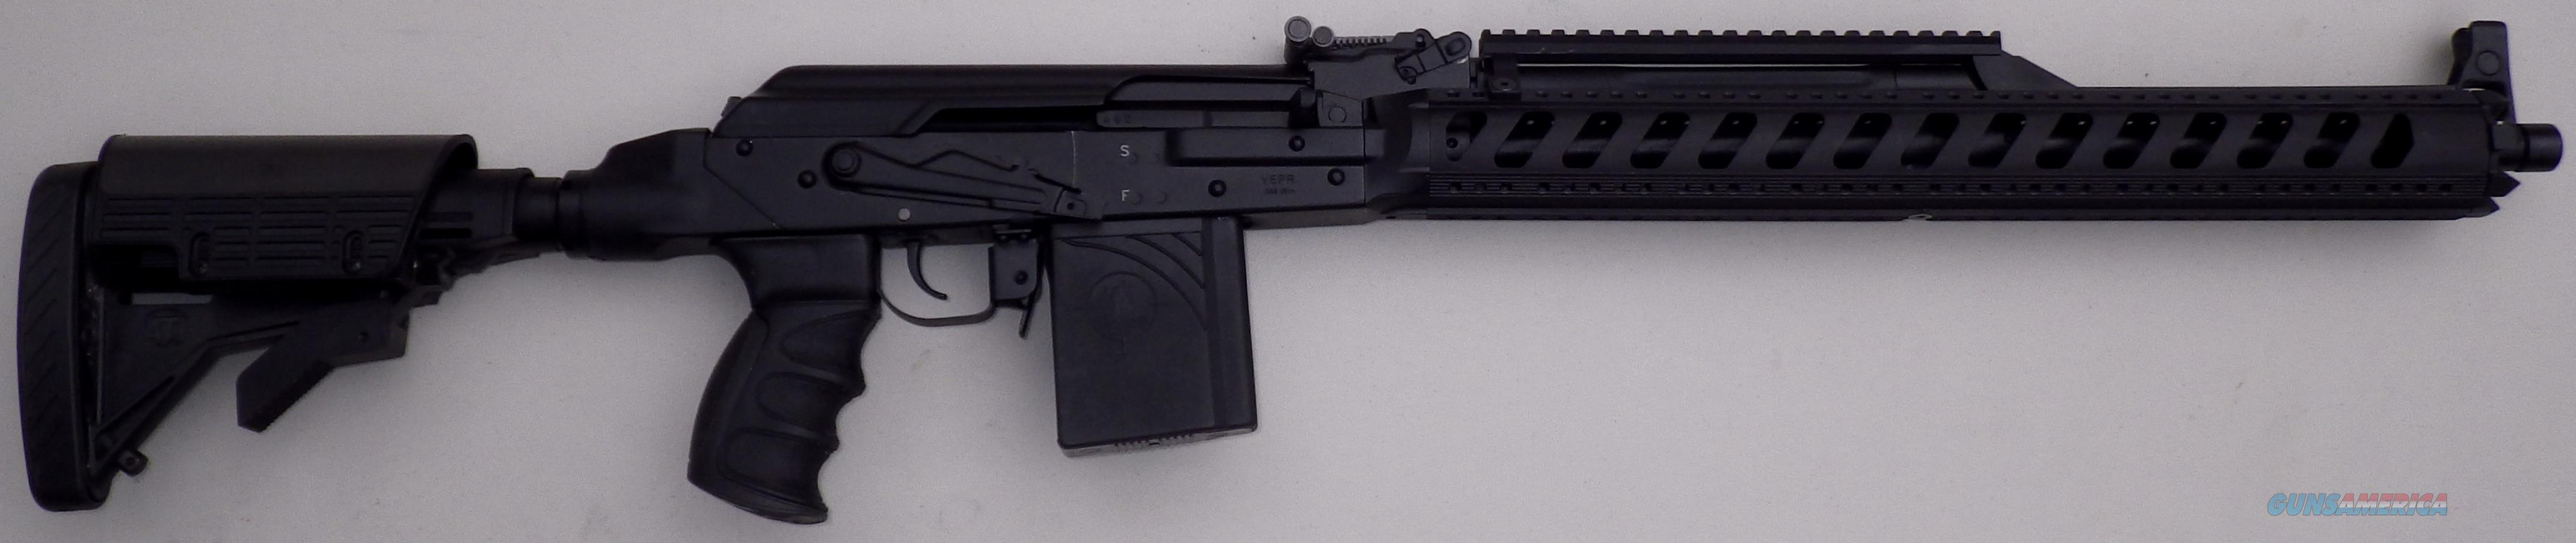 VEPR Molot-Oruzhie .308, unfired and loaded with accessories  Guns > Rifles > Tactical/Sniper Rifles